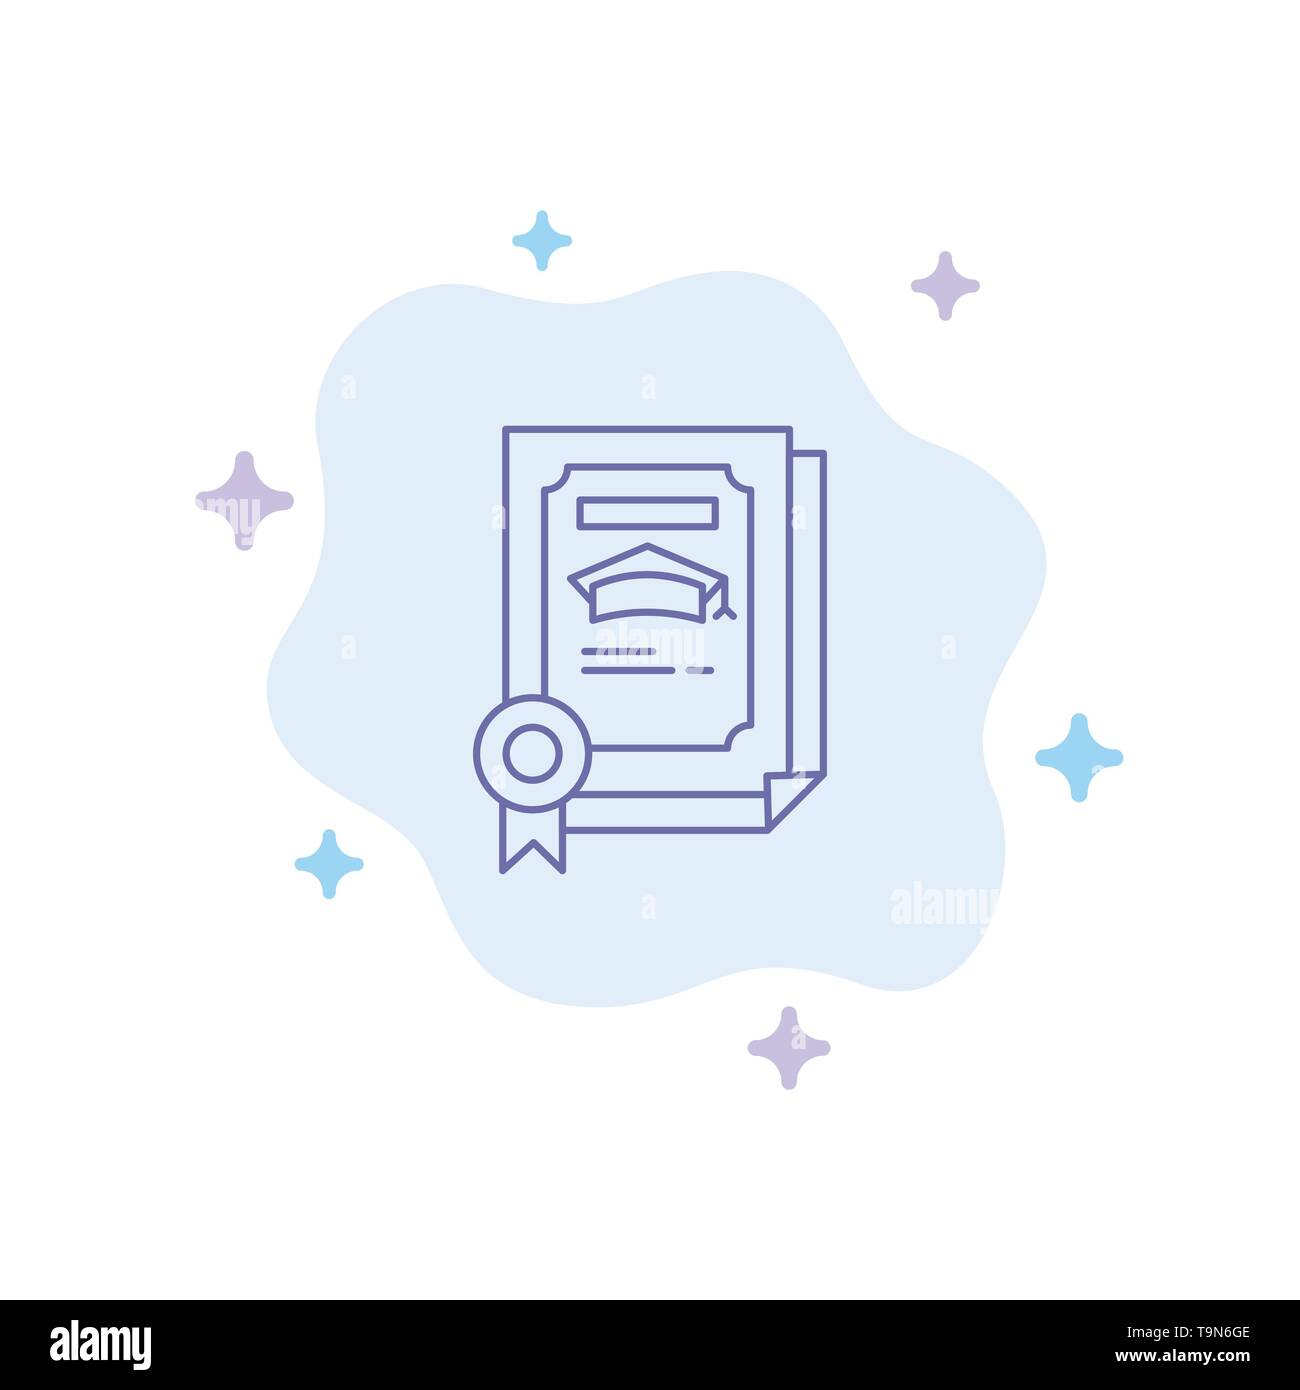 Degree, Achievement, Certificate, Graduate Blue Icon on Abstract Cloud Background - Stock Image